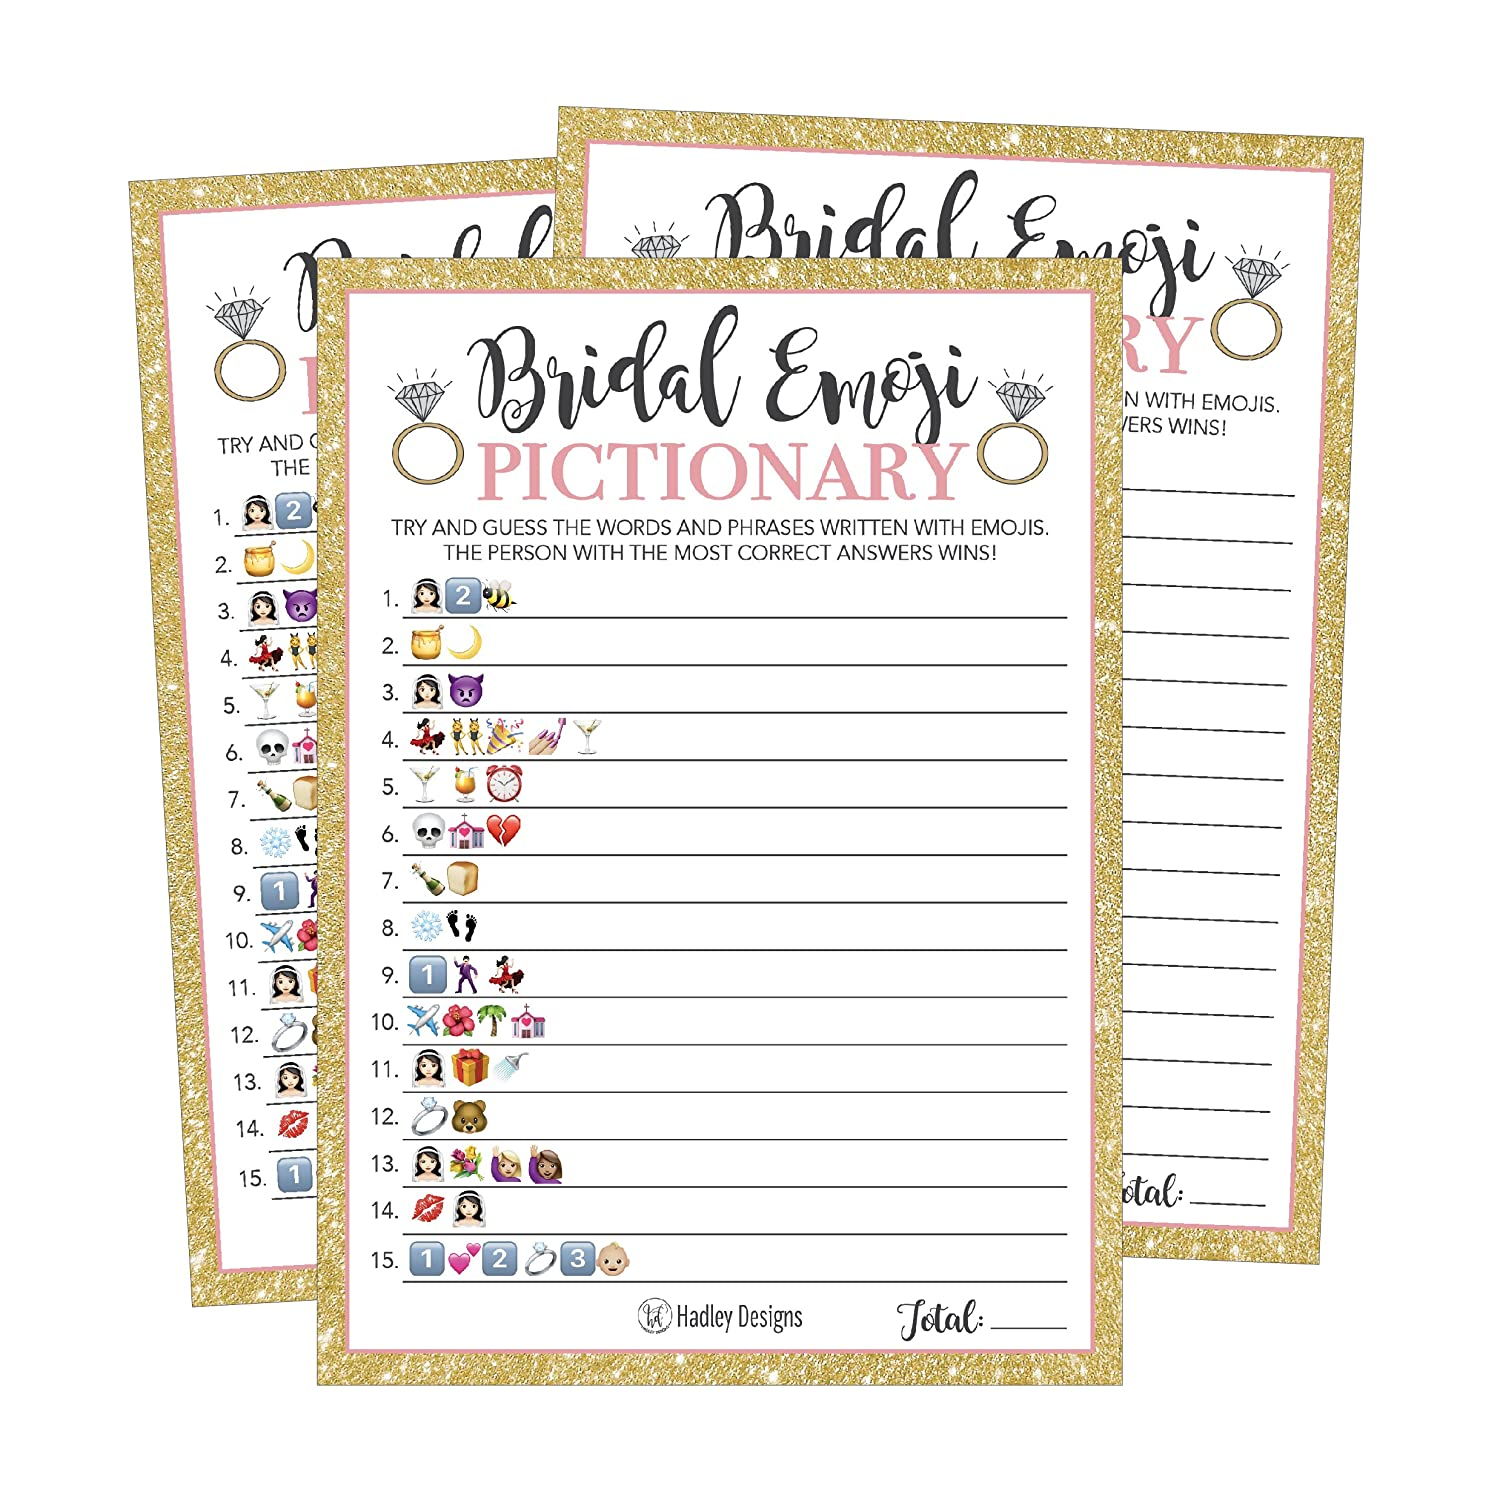 picture about Emoji Bridal Shower Game Free Printable named 25 Emoji Pictionary Bridal Shower Game titles Suggestions, Wedding day Shower, Bachelorette or Engagement Social gathering For Adult males and Females Partners, Adorable Amusing Board Package Deal